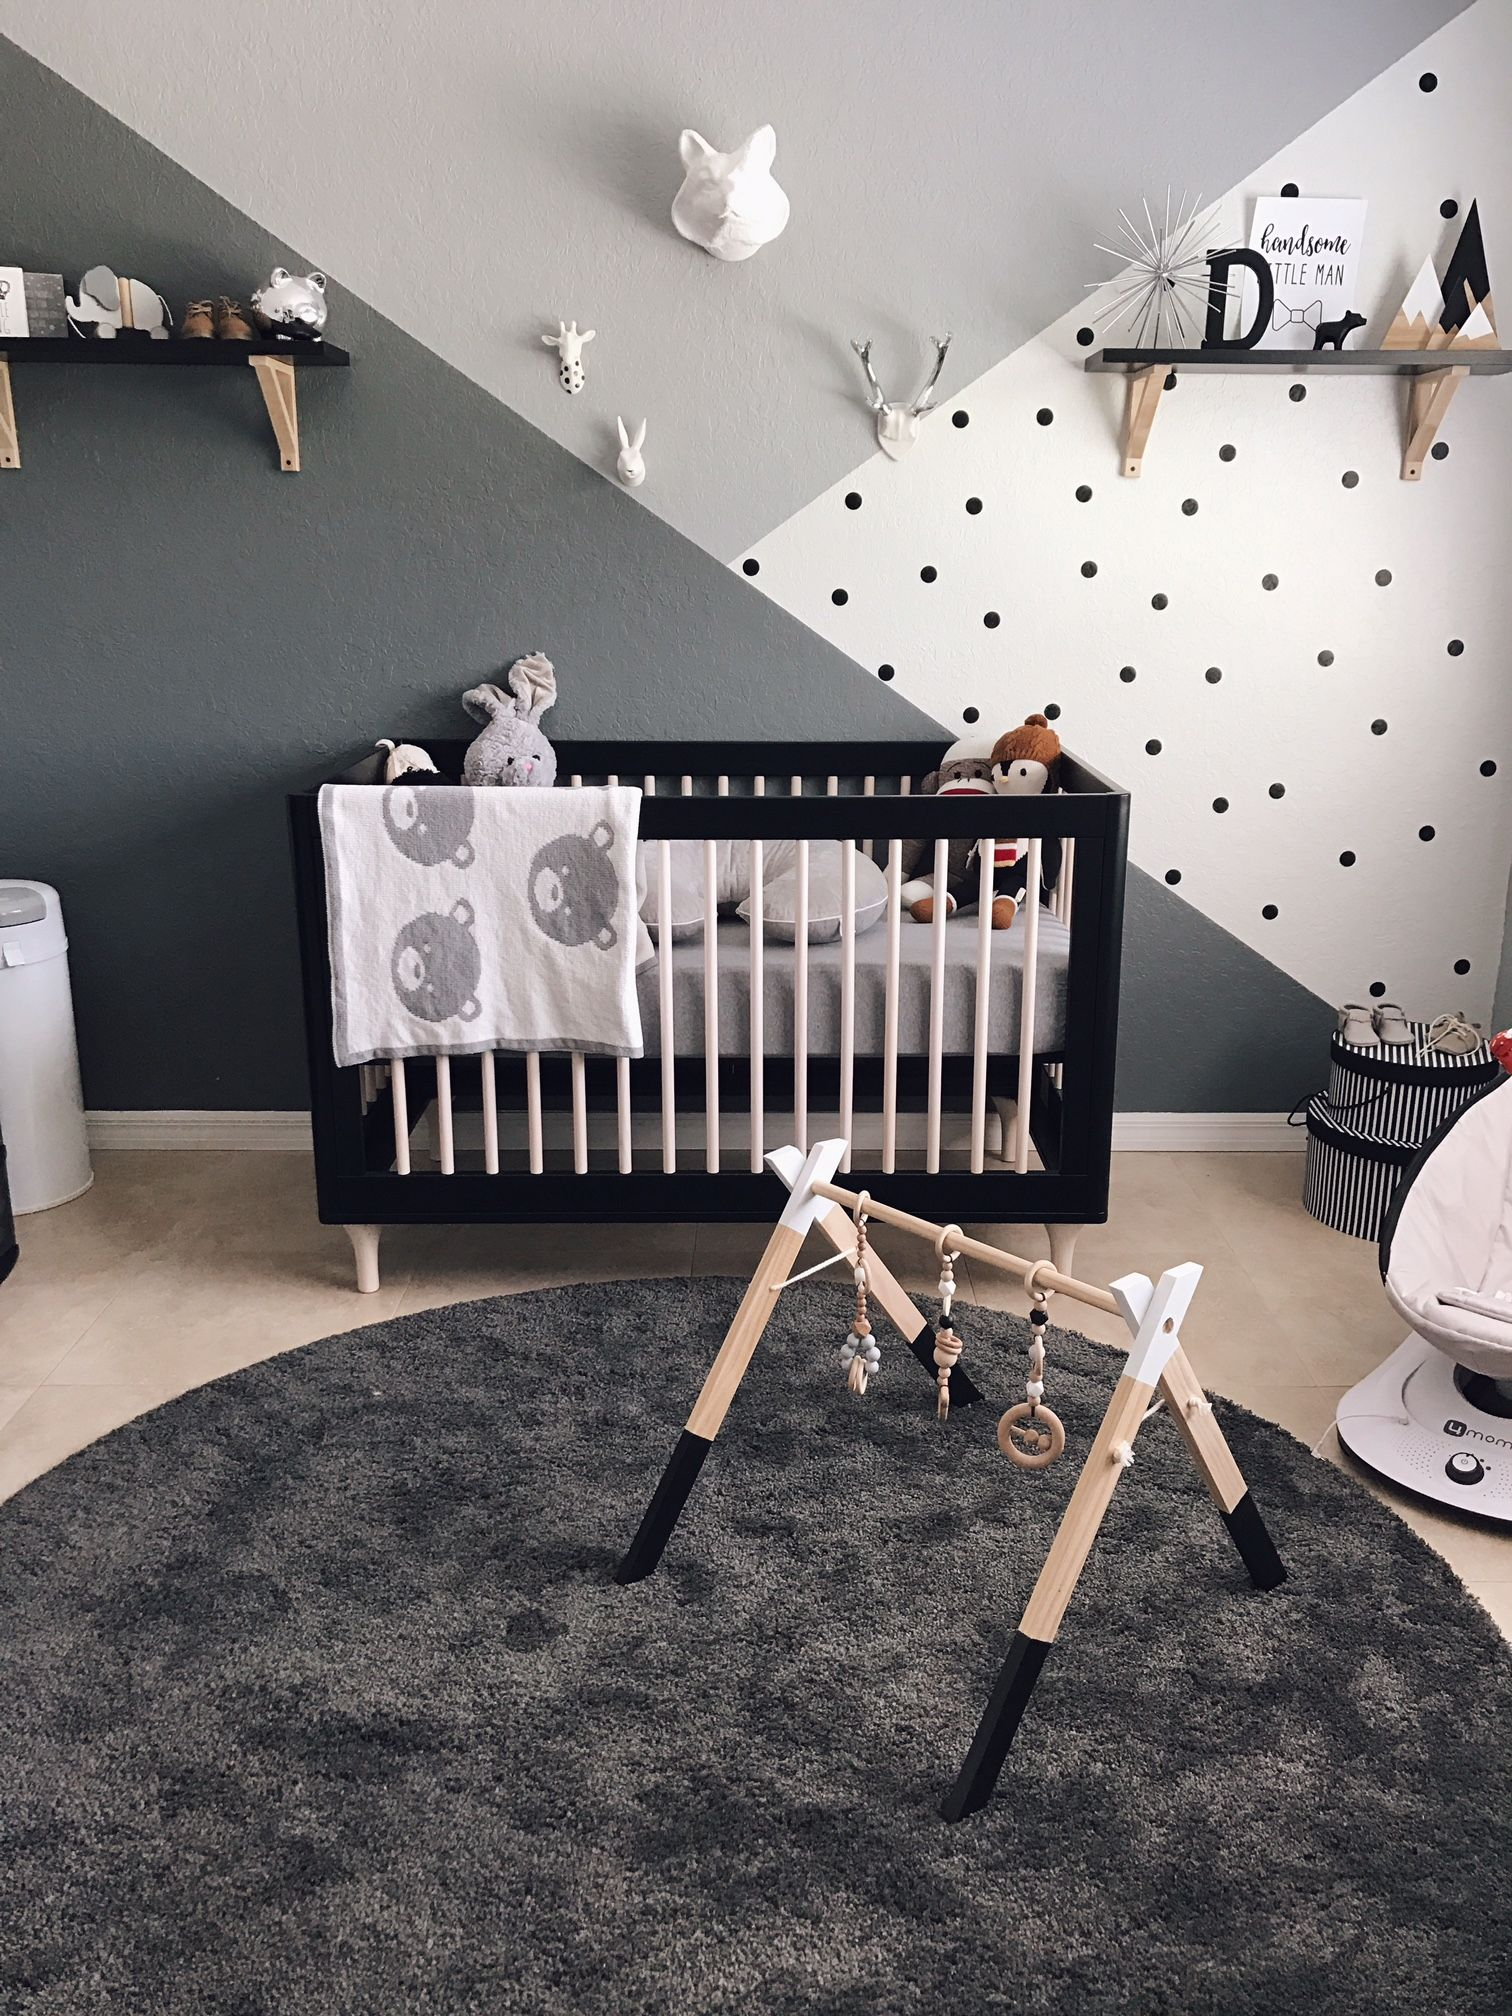 Baby Boy Room Design Pictures: Baby Room Decor, Boy Room